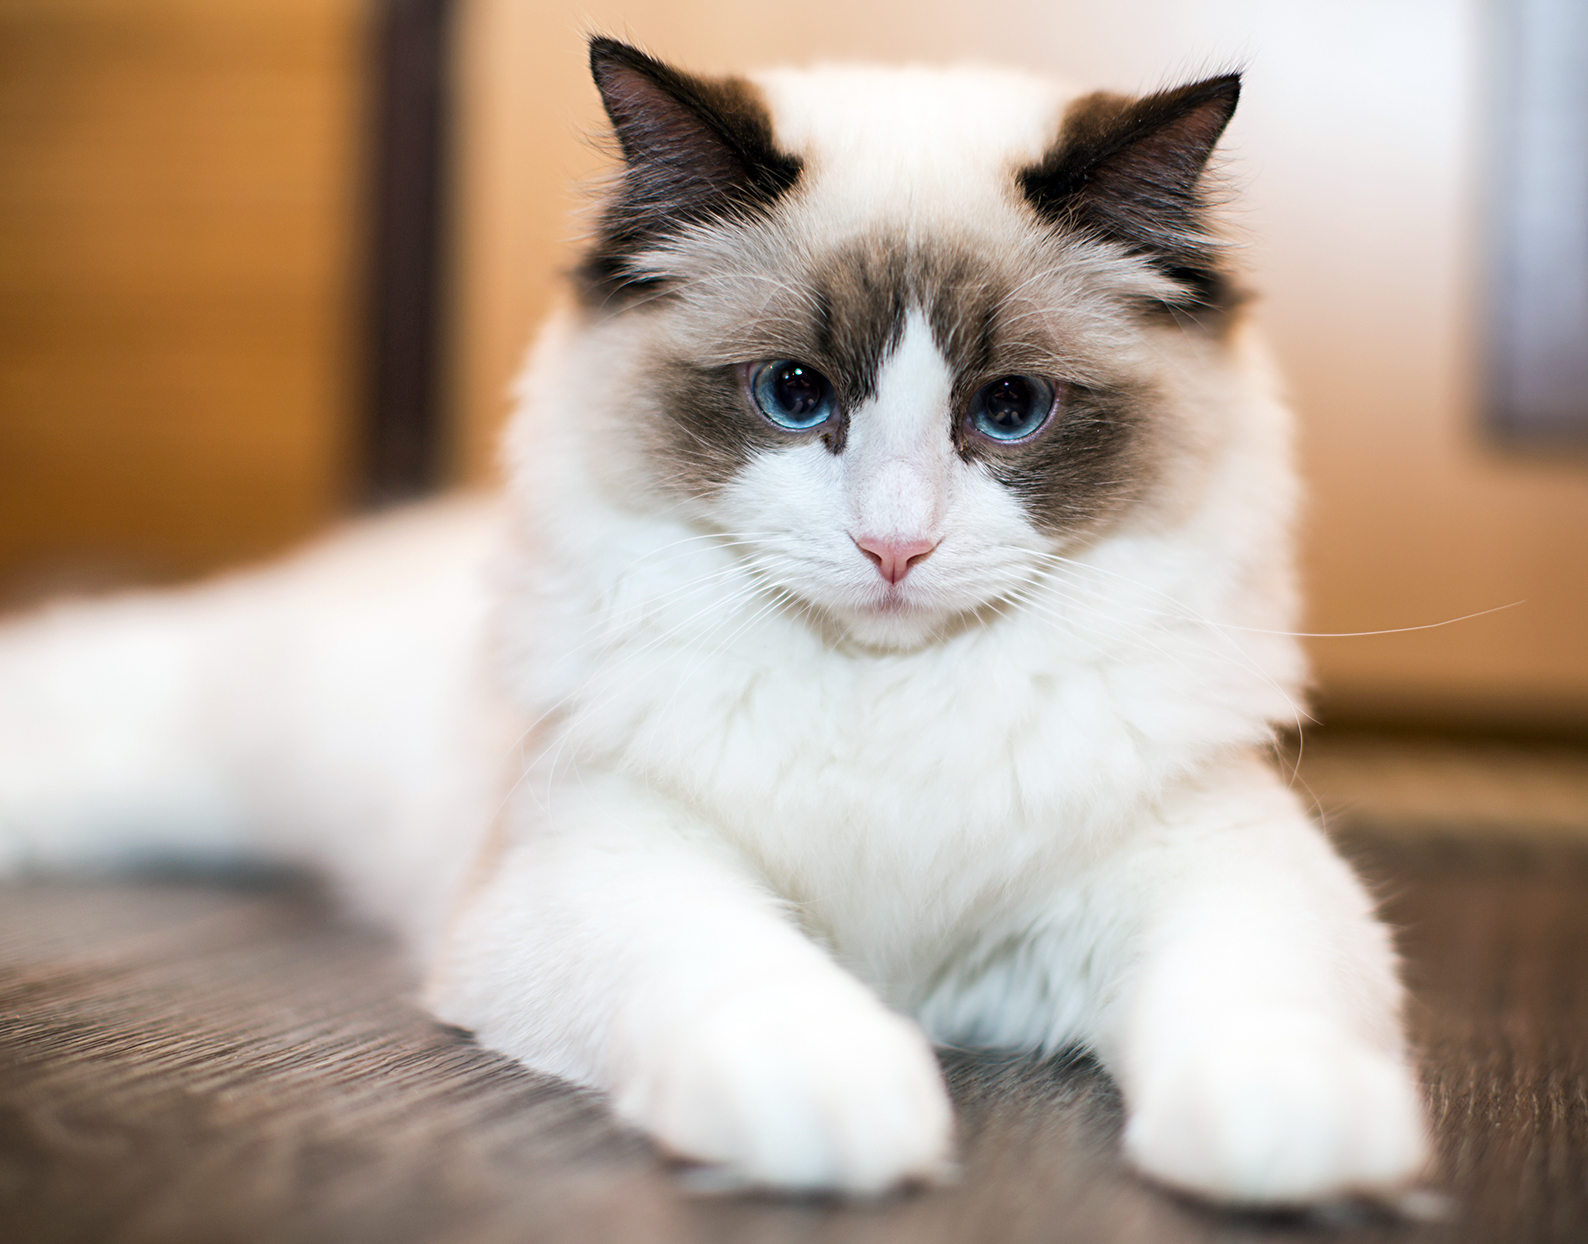 cute ragdoll cat lying on a wood floor looking at the camera